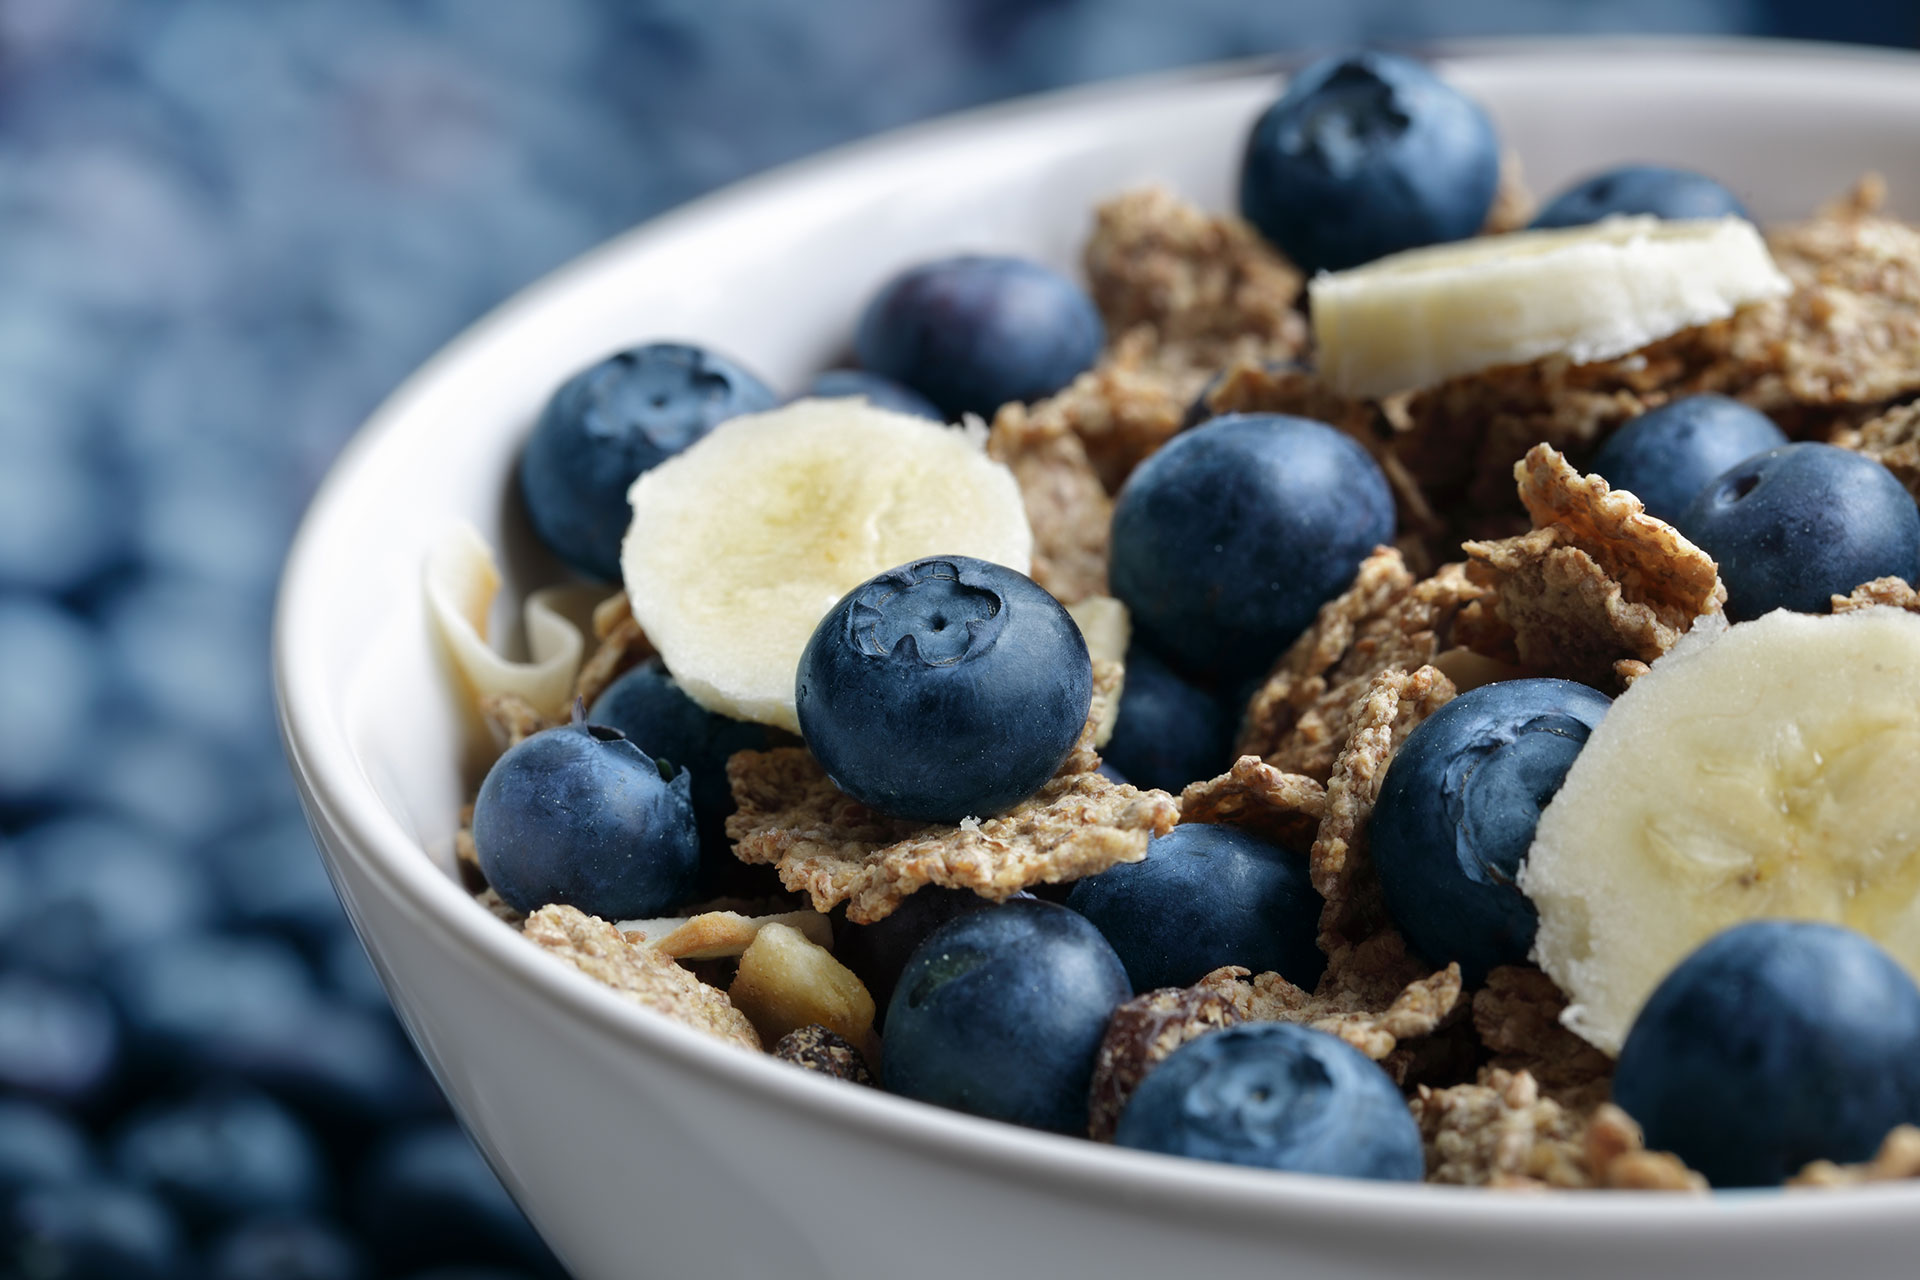 Losing Weight with High Fiber Foods